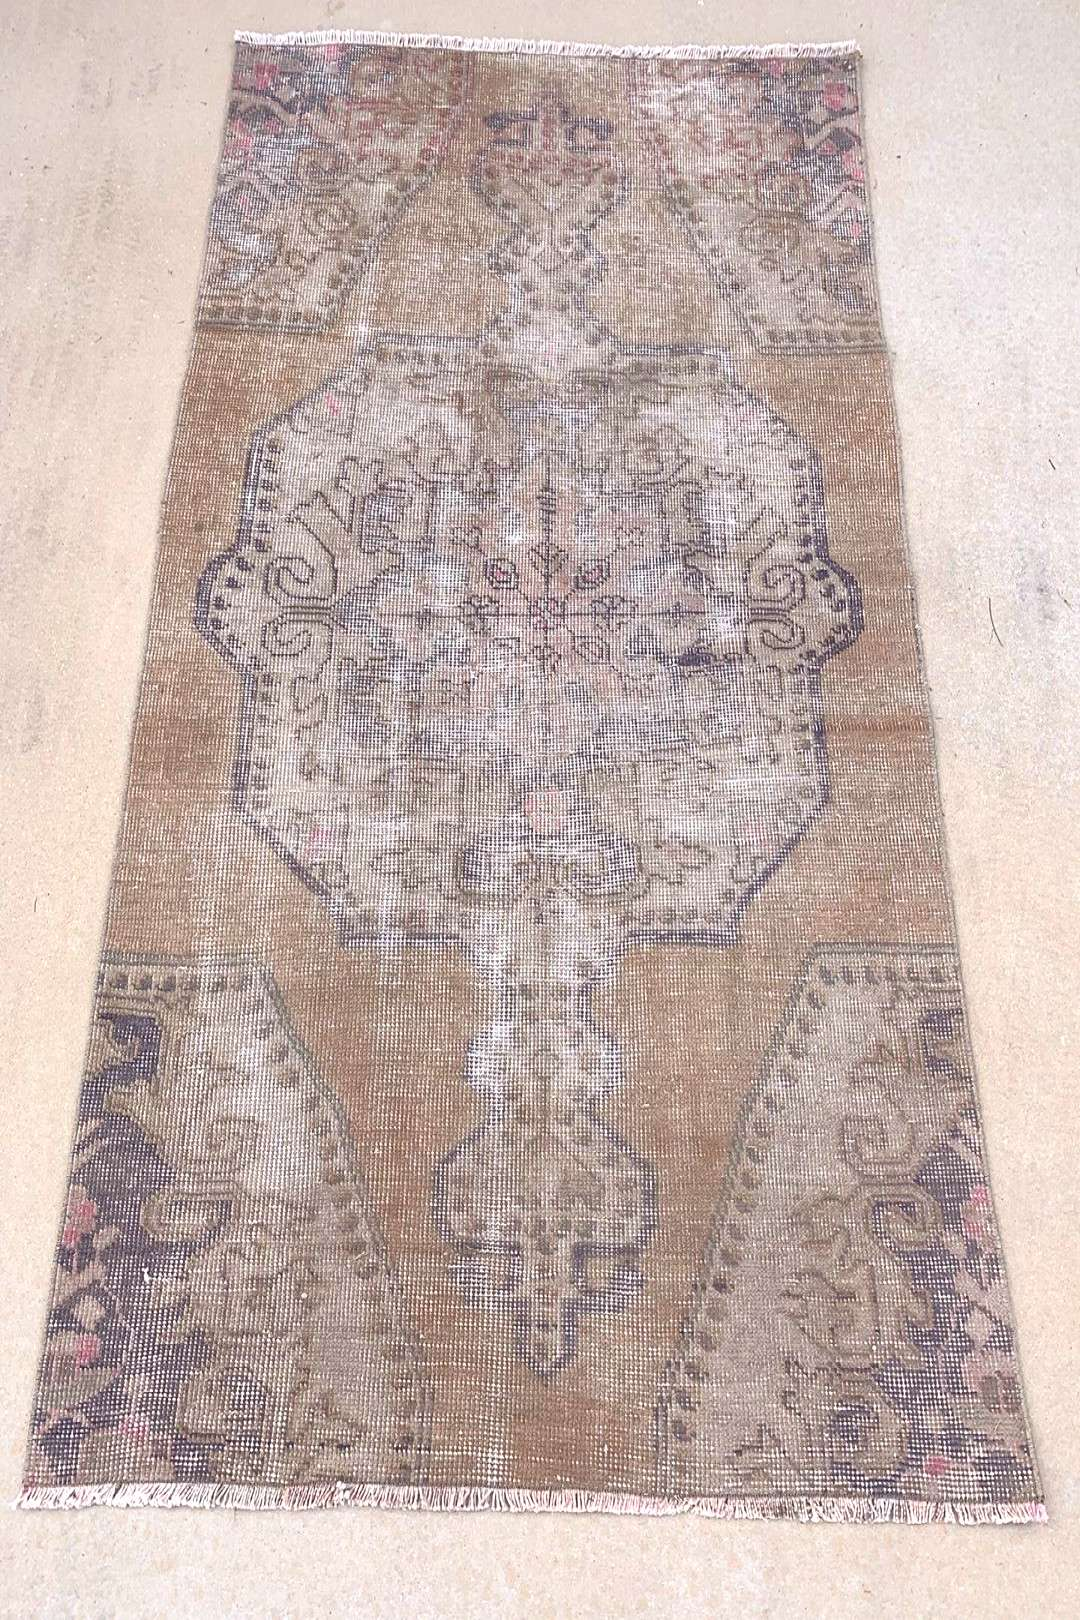 Vintage Rugs By The Bay LLC on March 19 2020